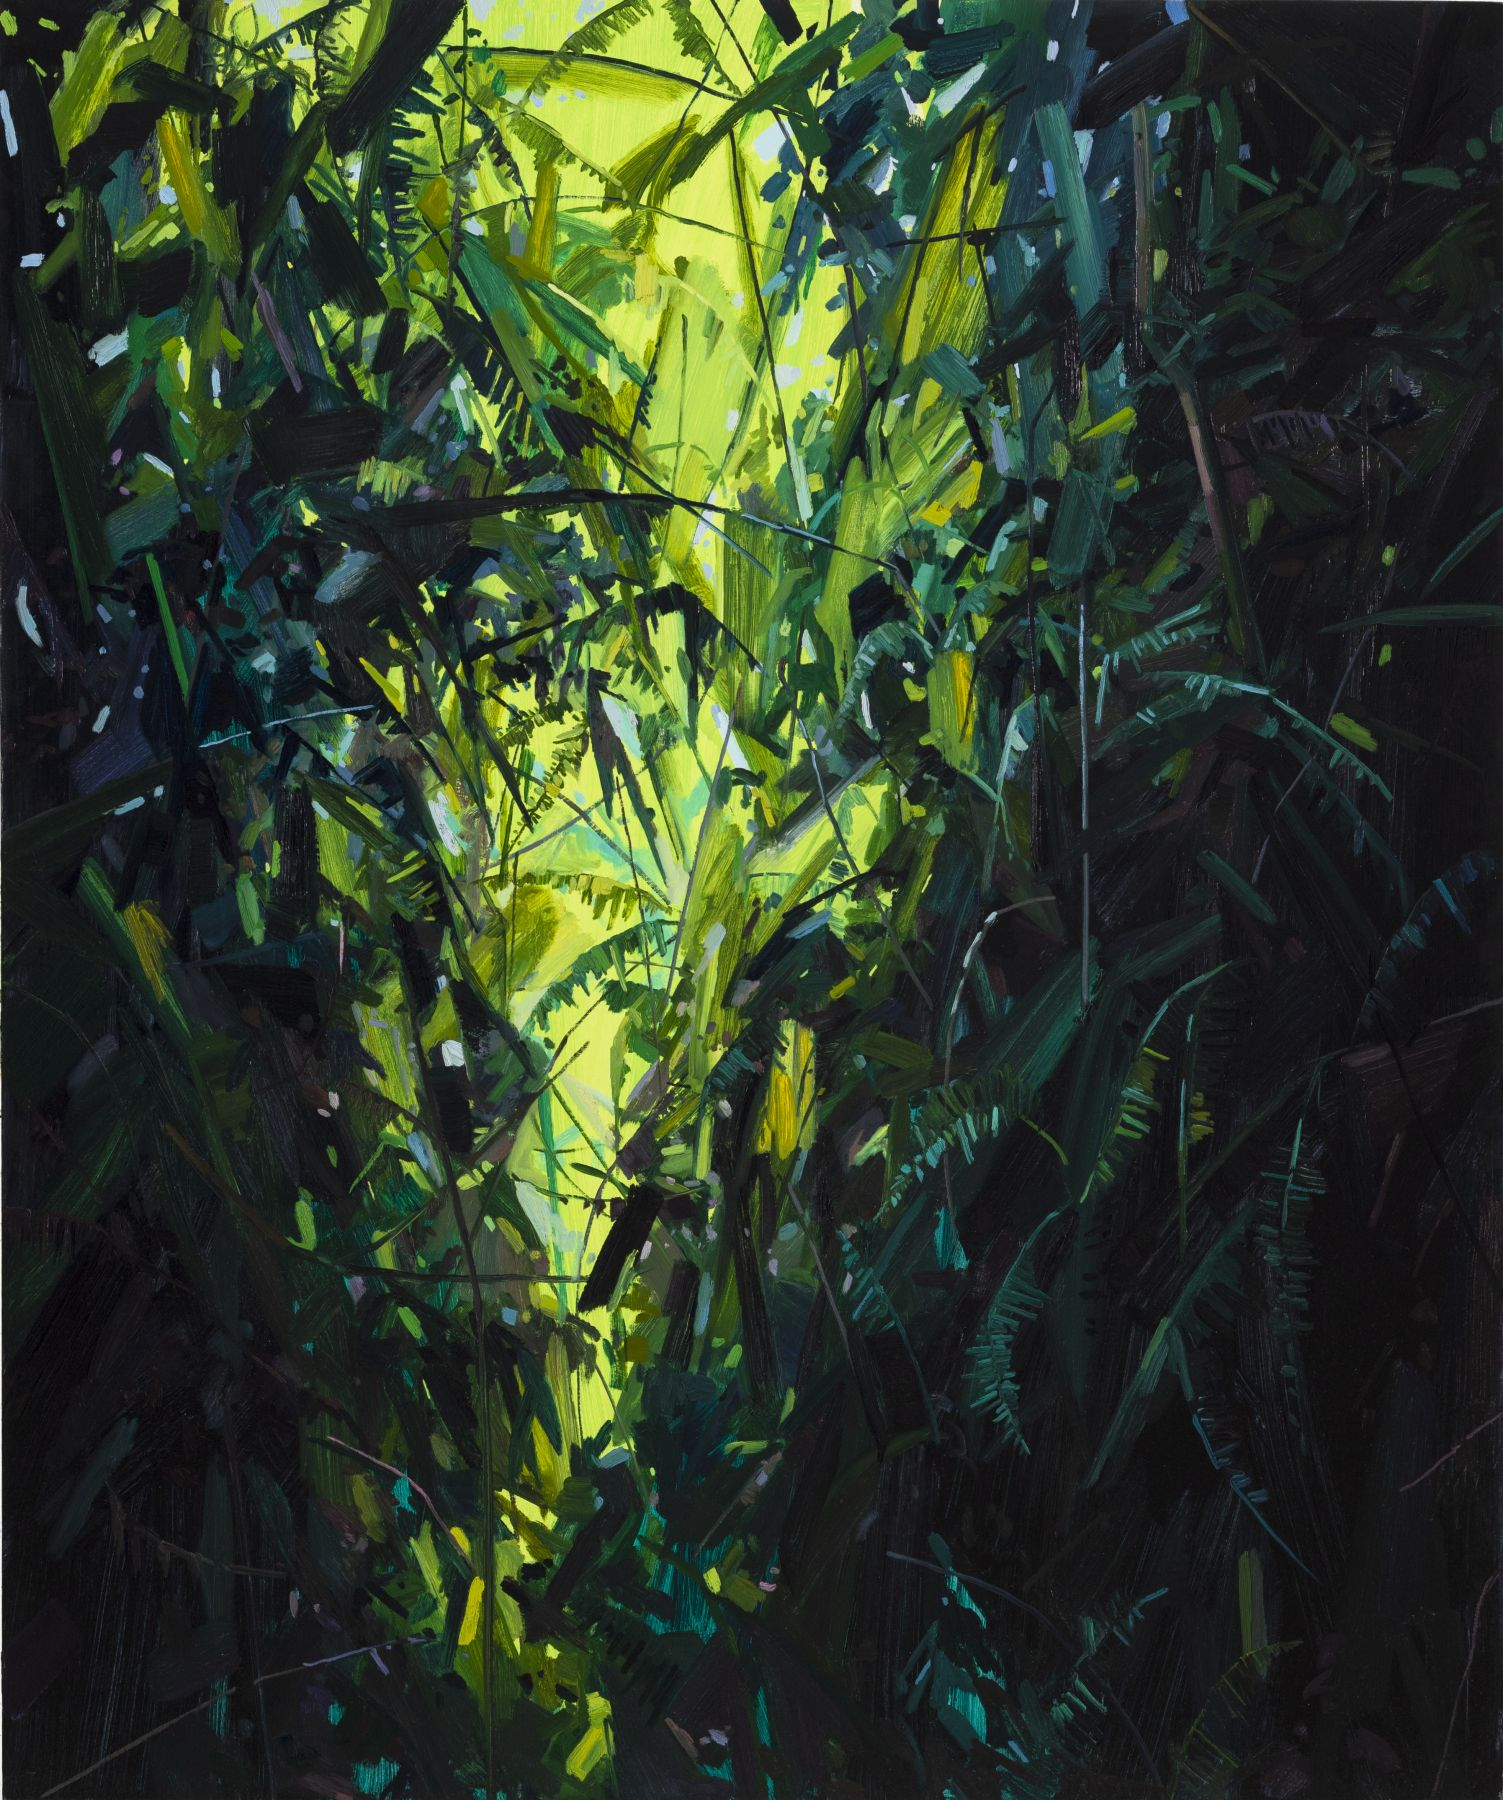 Leaves and Vines, 2017